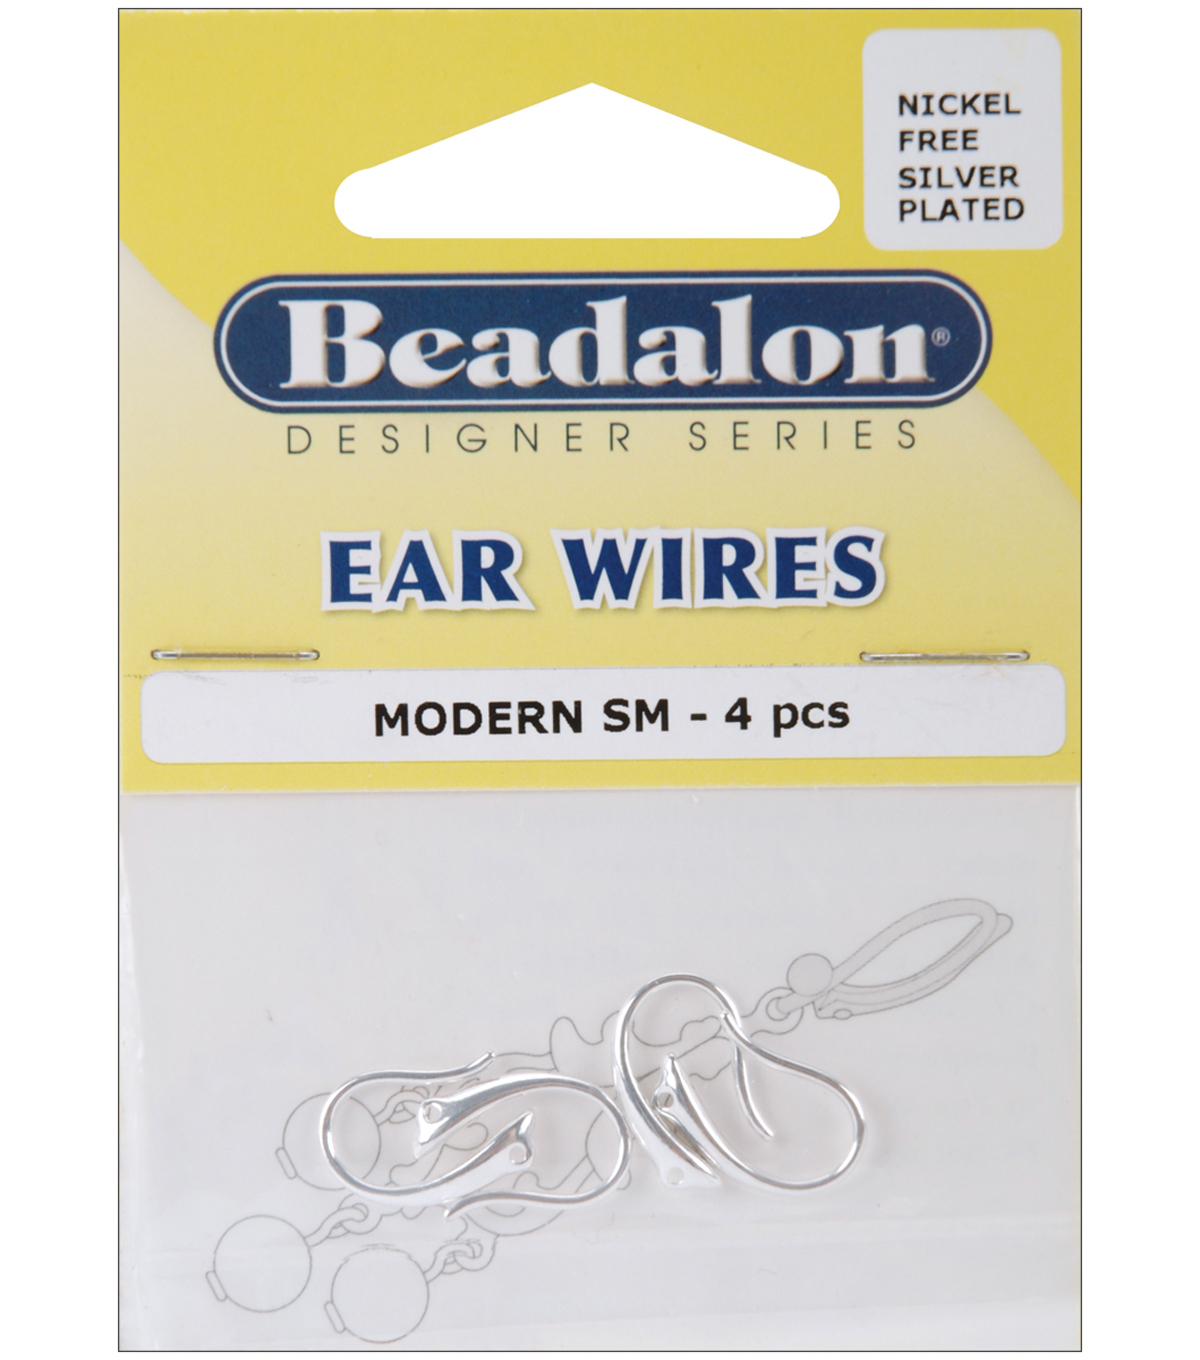 Beadalon Ear Wires Modern 4PK-Silver Plated/Nickel-free